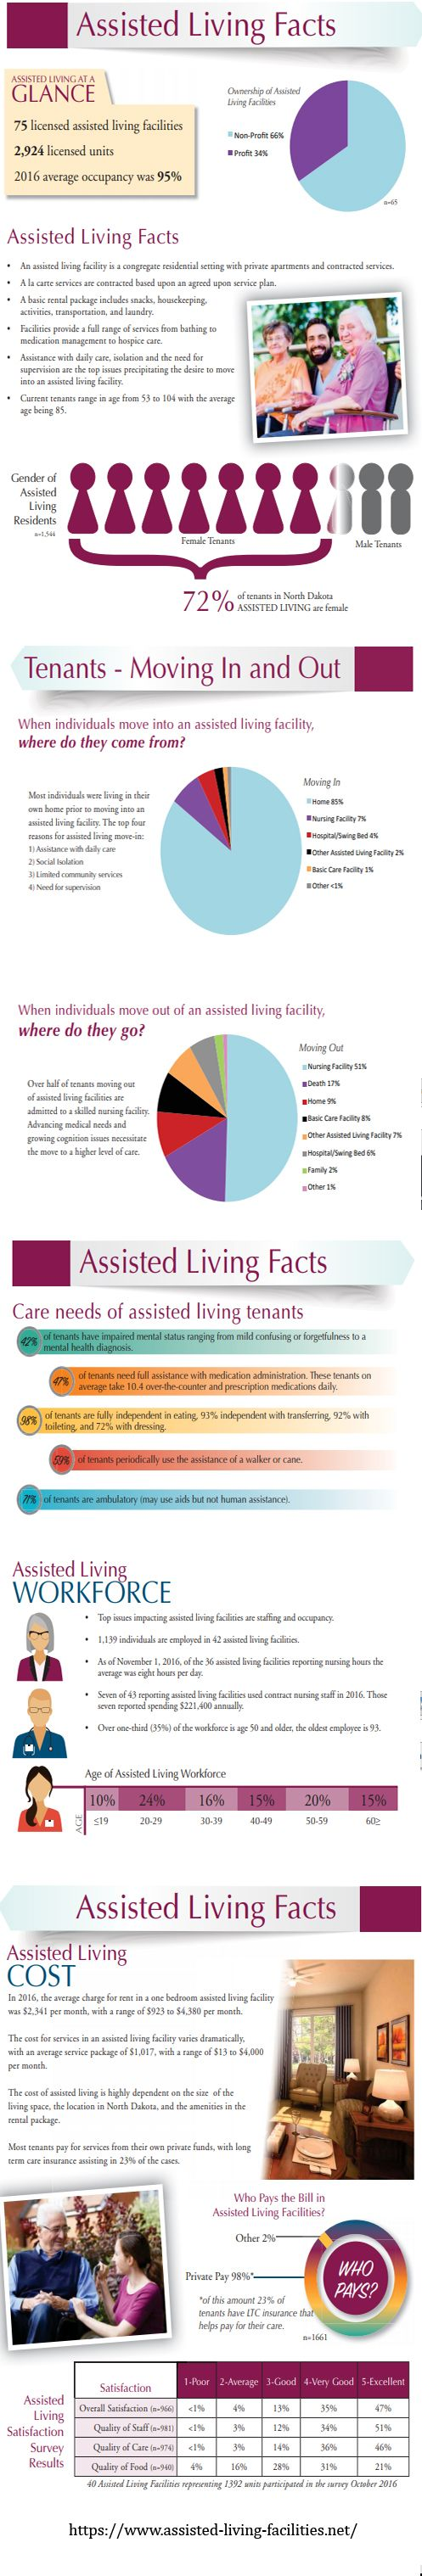 """WHAT IS ASSISTED LIVING? """"Assisted living"""" generally means a residence for seniors where assistance is provided for daily living, such as bathing, dressing, grooming, taking medications, and making doctors' appointments. Meals, recreation, housekeeping and laundry services are offered. The goal is to provide residents with considerate and respectful care, and to promote their dignity, independence, privacy and safety in a comfortable, residential setting."""